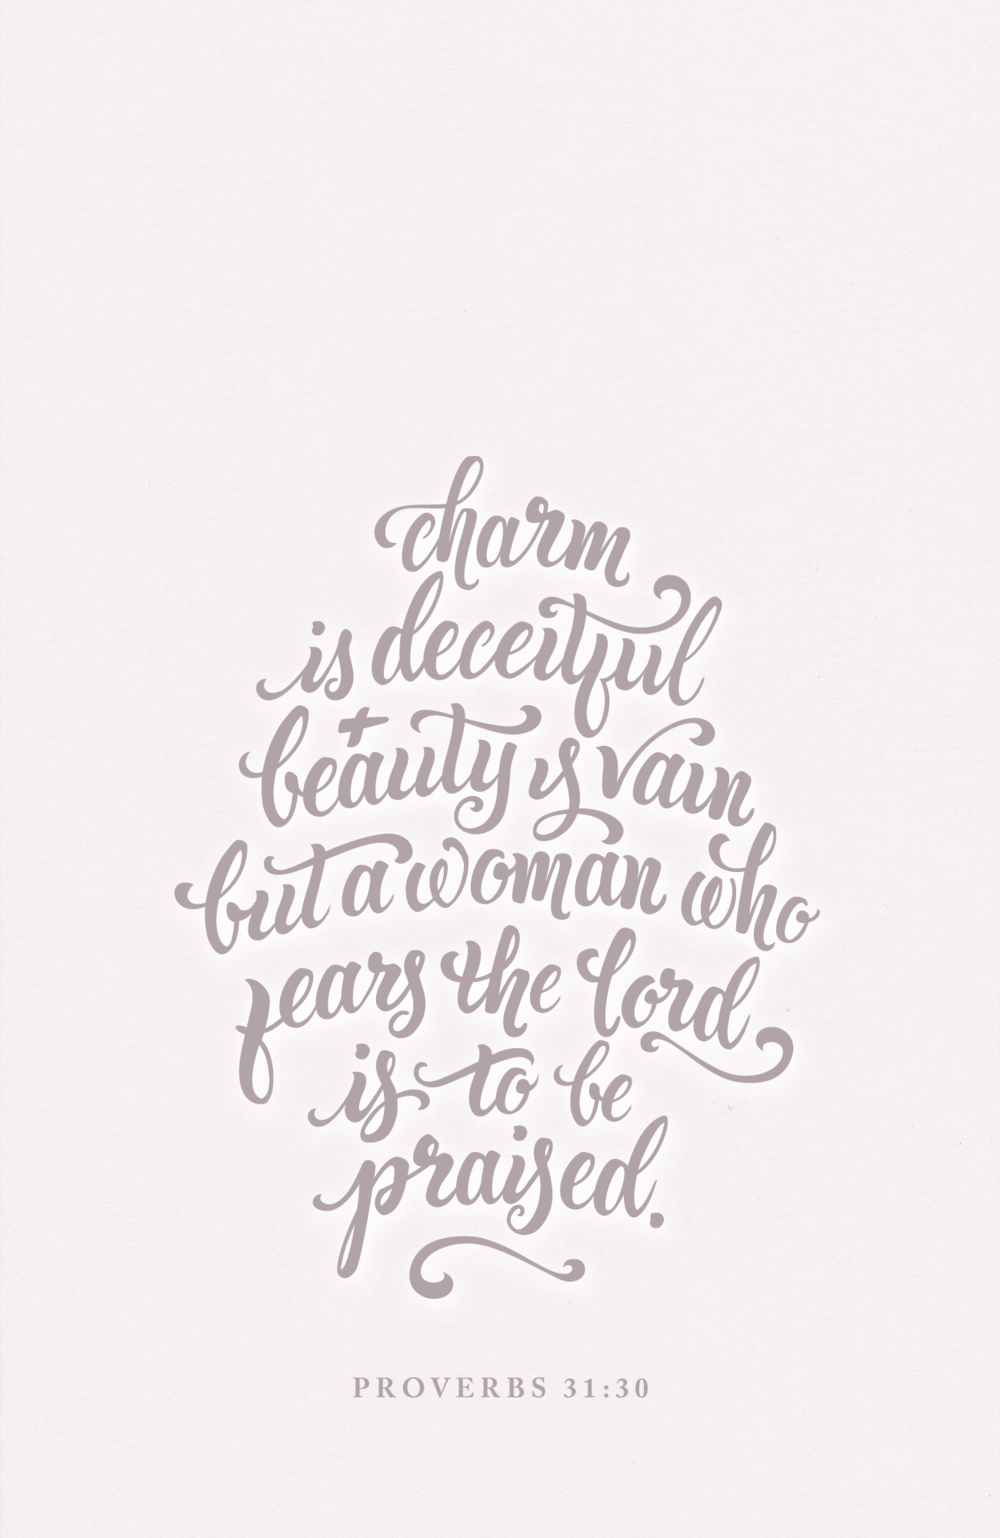 Wonderful Wallpaper Bible Verse Artsy - 57643677c4fc16072ece3e4c1368cbe4  Perfect Image Reference_4097100.png